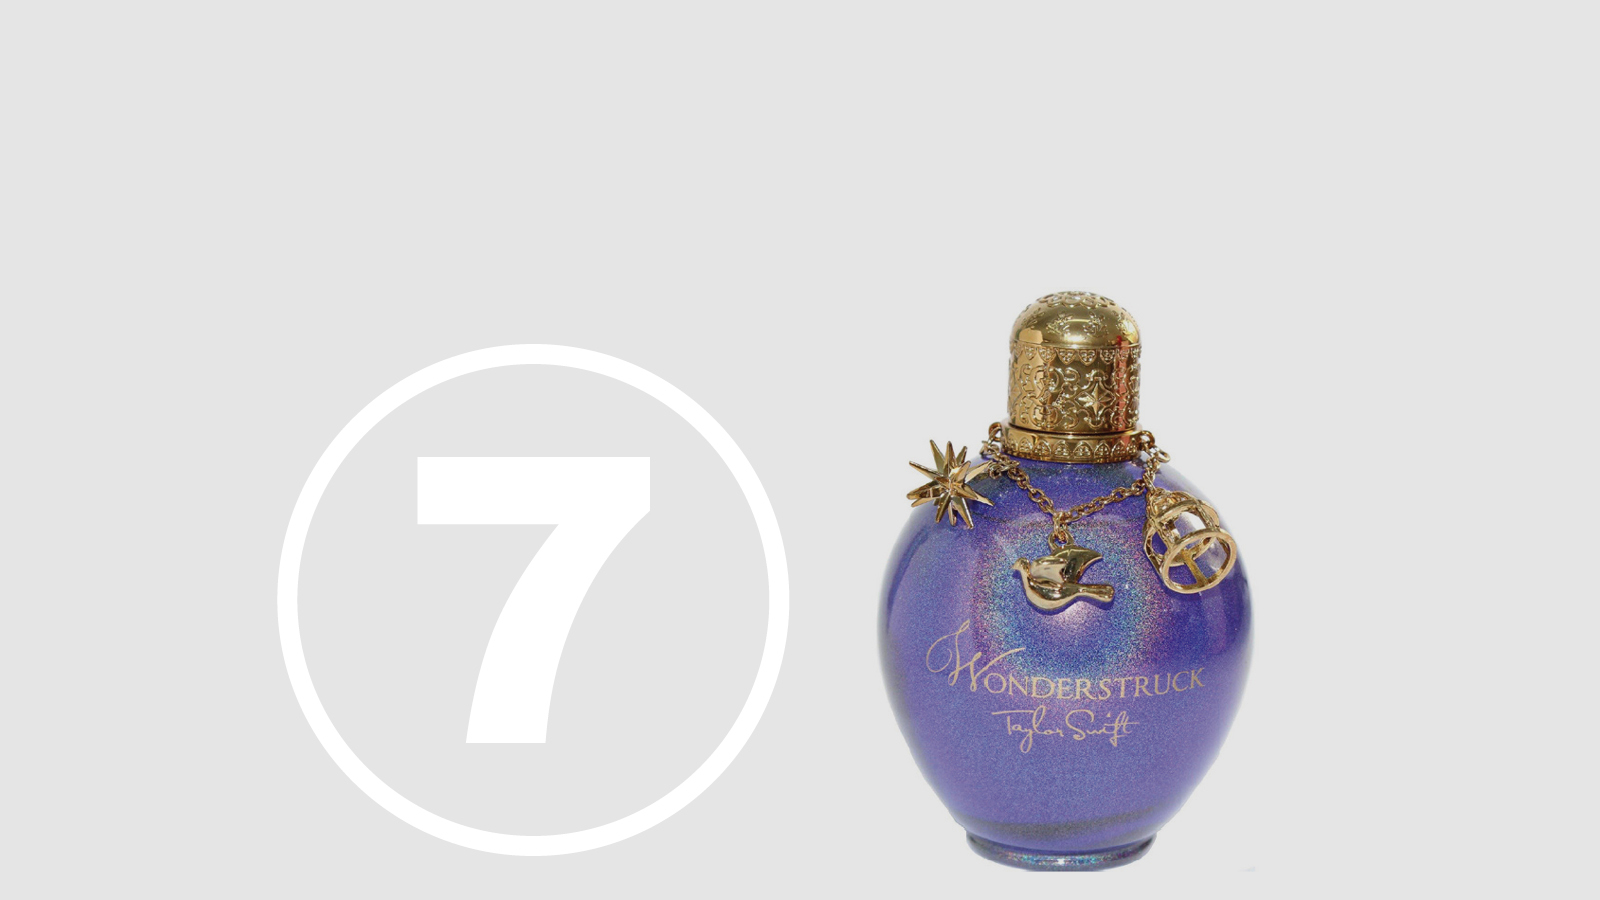 """<h5>Top Ten Most Hazardous Products</h5><h4>Taylor Swift Wonderstruck Perfume</h4><p>A Revlon fine fragrance endorsed by the beloved pop country singer Taylor Swift.<br />We found <span class=""""highlight"""">14 chemicals</span> chemicals linked to chronic health effects with <span class=""""highlight"""">92.9% hidden in """"fragrance.""""</span></p>"""